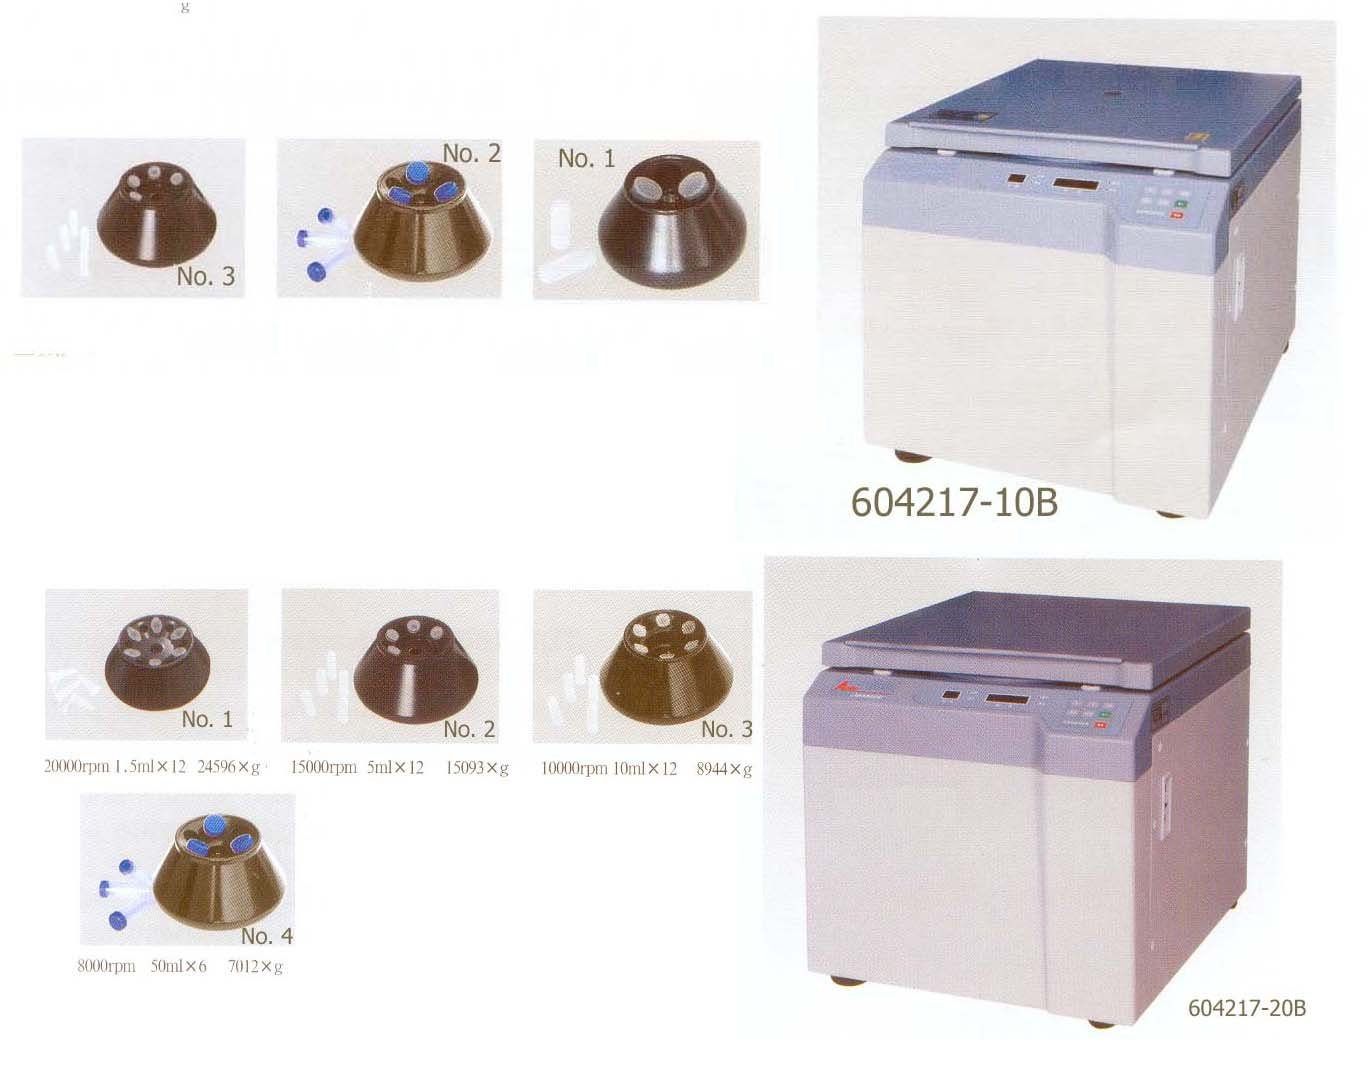 High speed table-top centrifuge